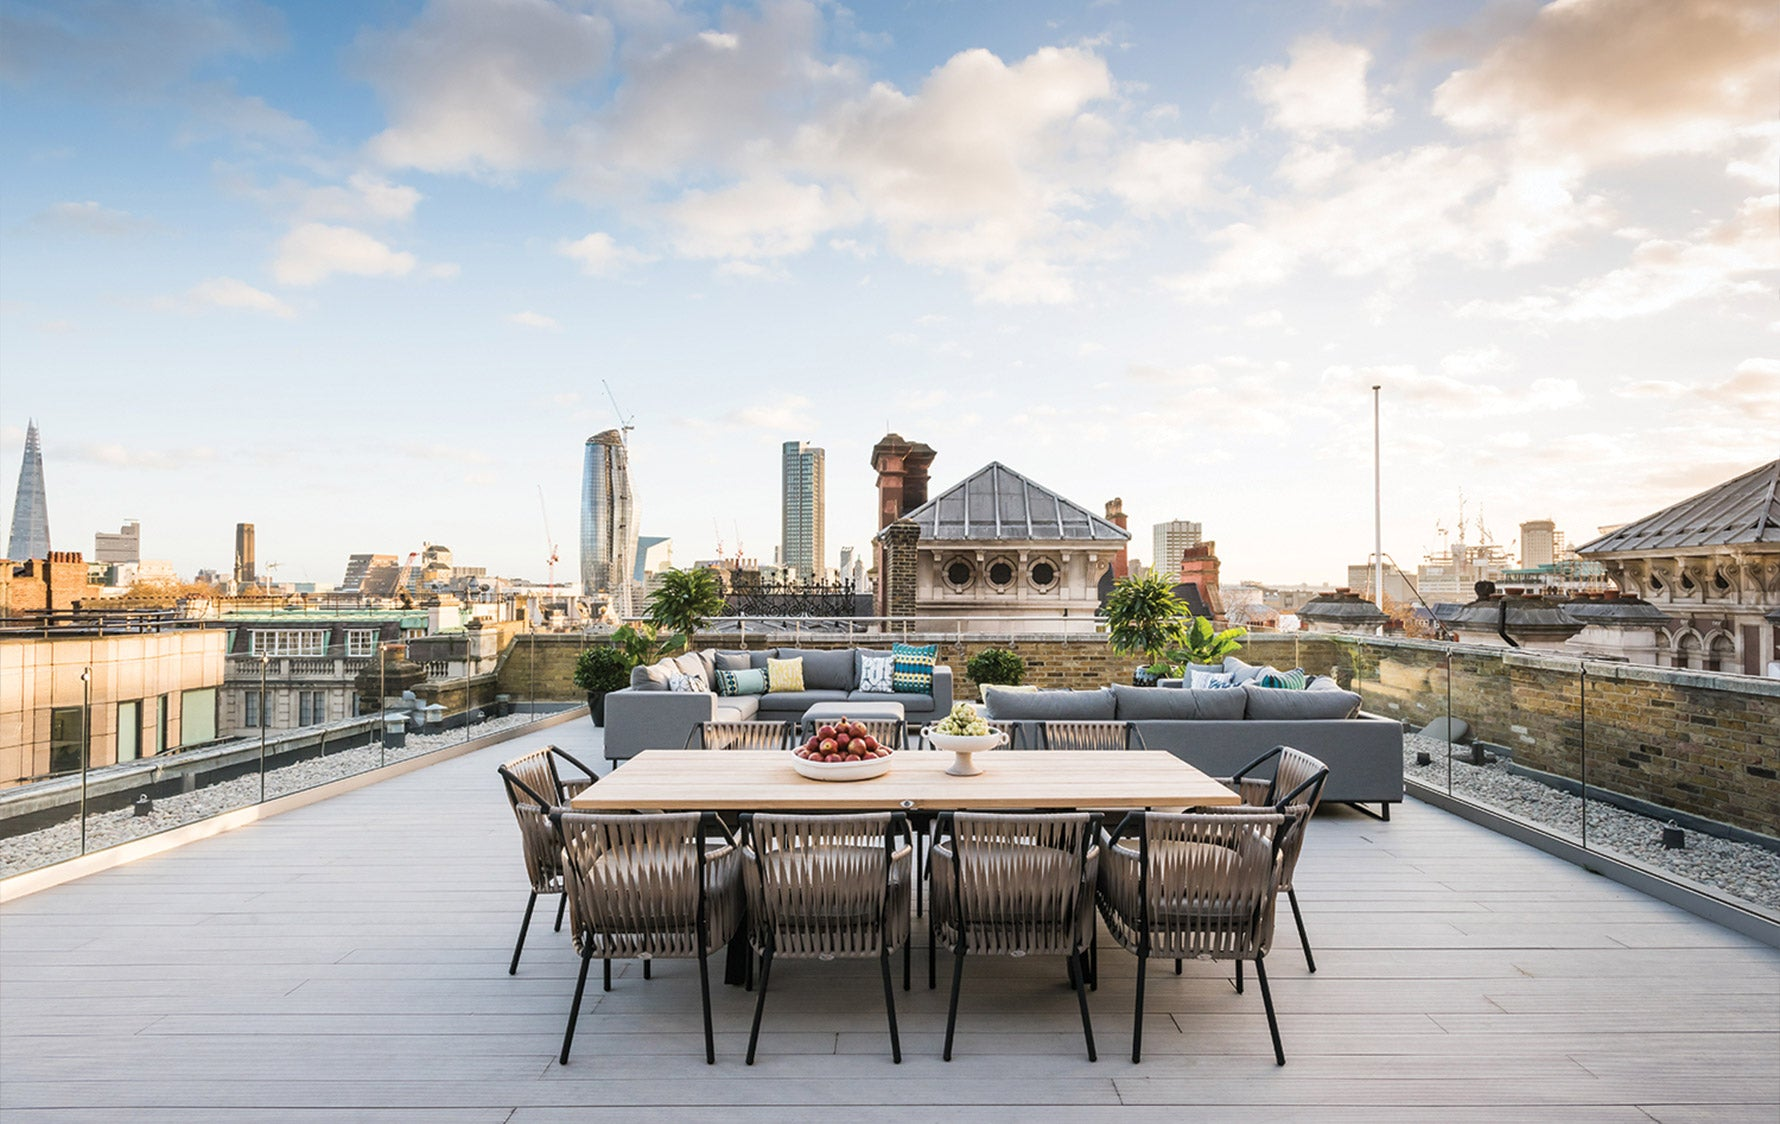 Rooftop Dining, Outdoor Space Ideas |A.LONDON | Read more in The Luxurist | LuxDeco.com